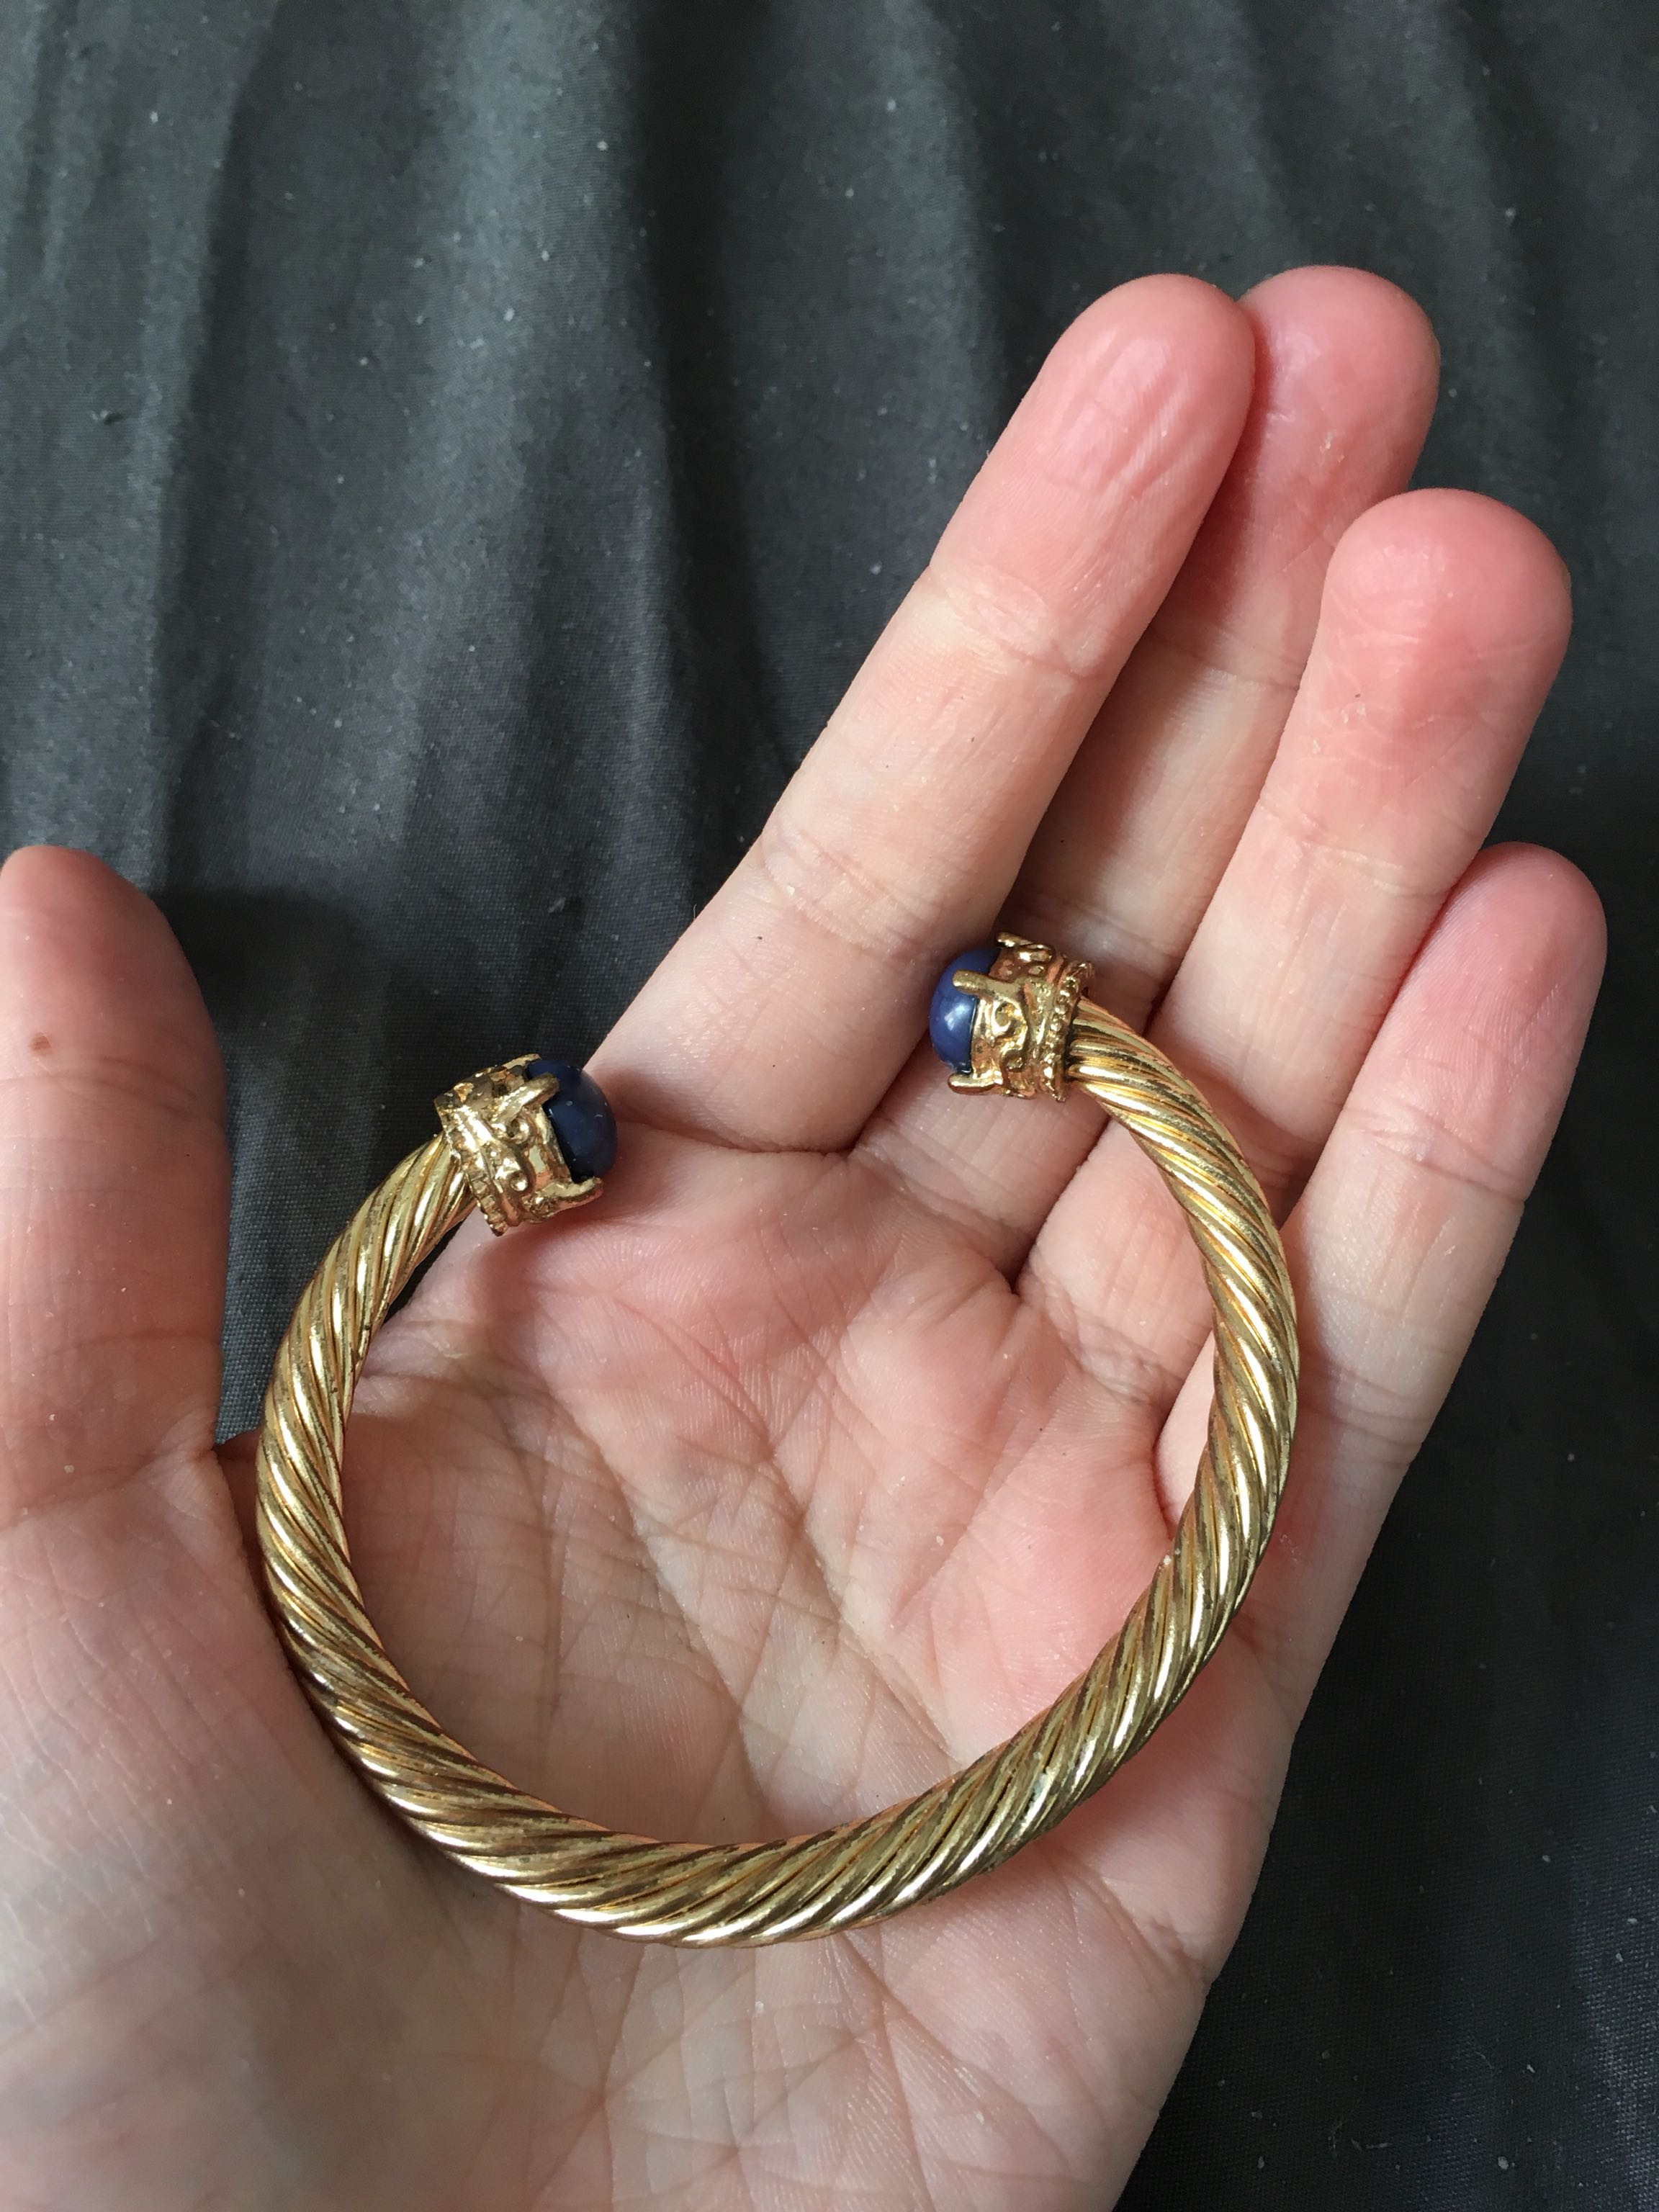 Topshop plated gold bangle with dark blue stones